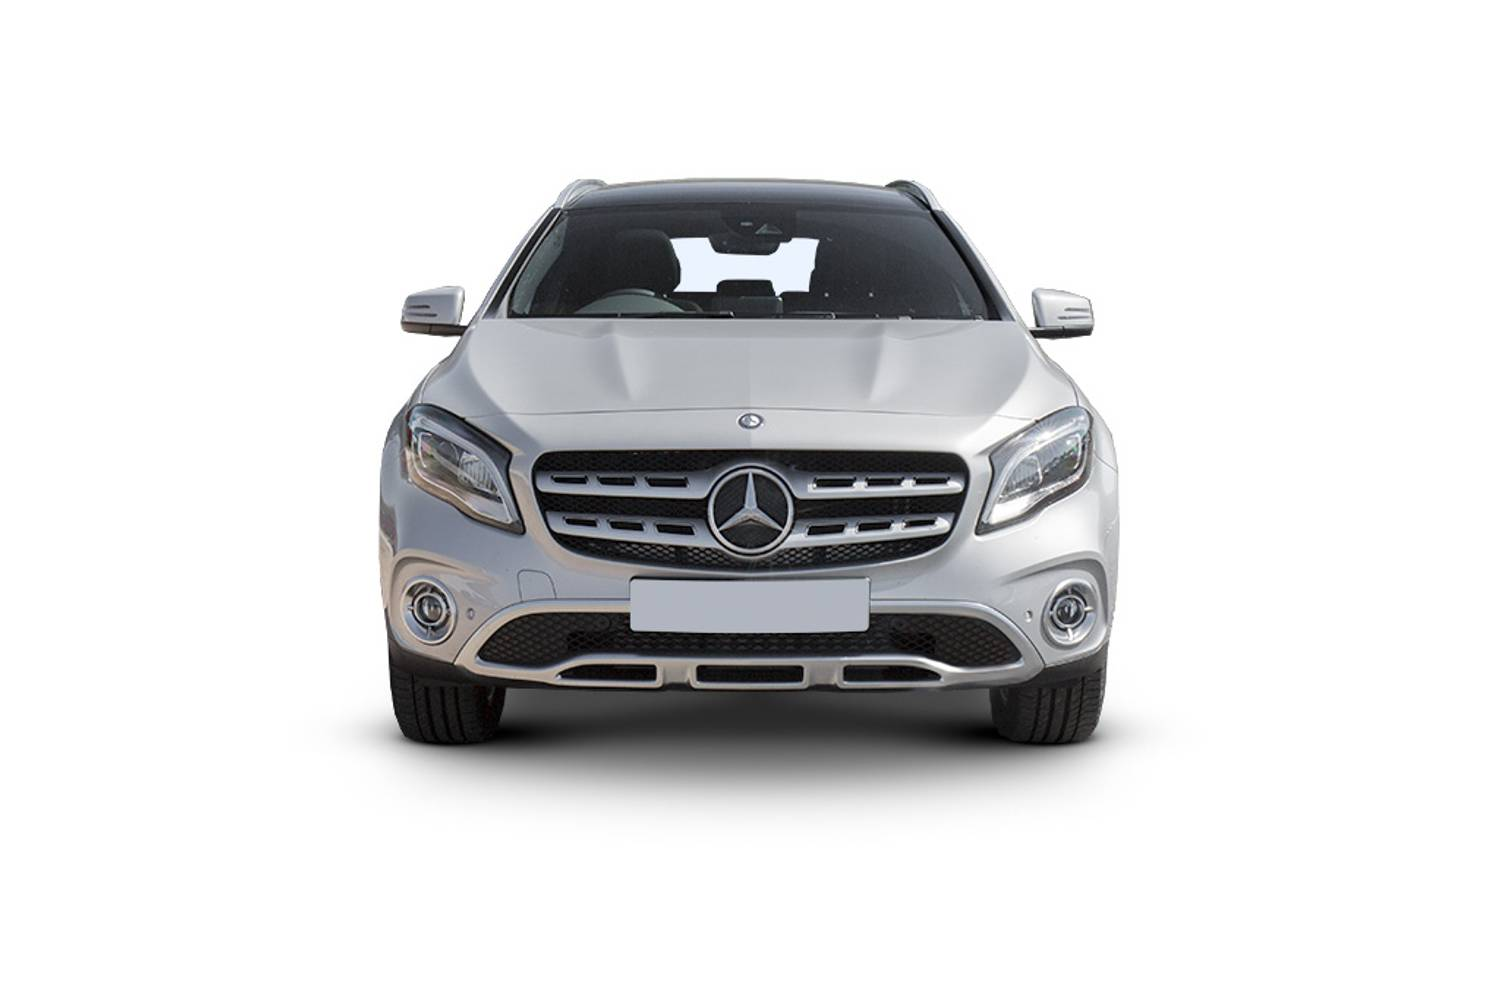 new mercedes benz gla class hatchback gla 200 se 5 door. Black Bedroom Furniture Sets. Home Design Ideas